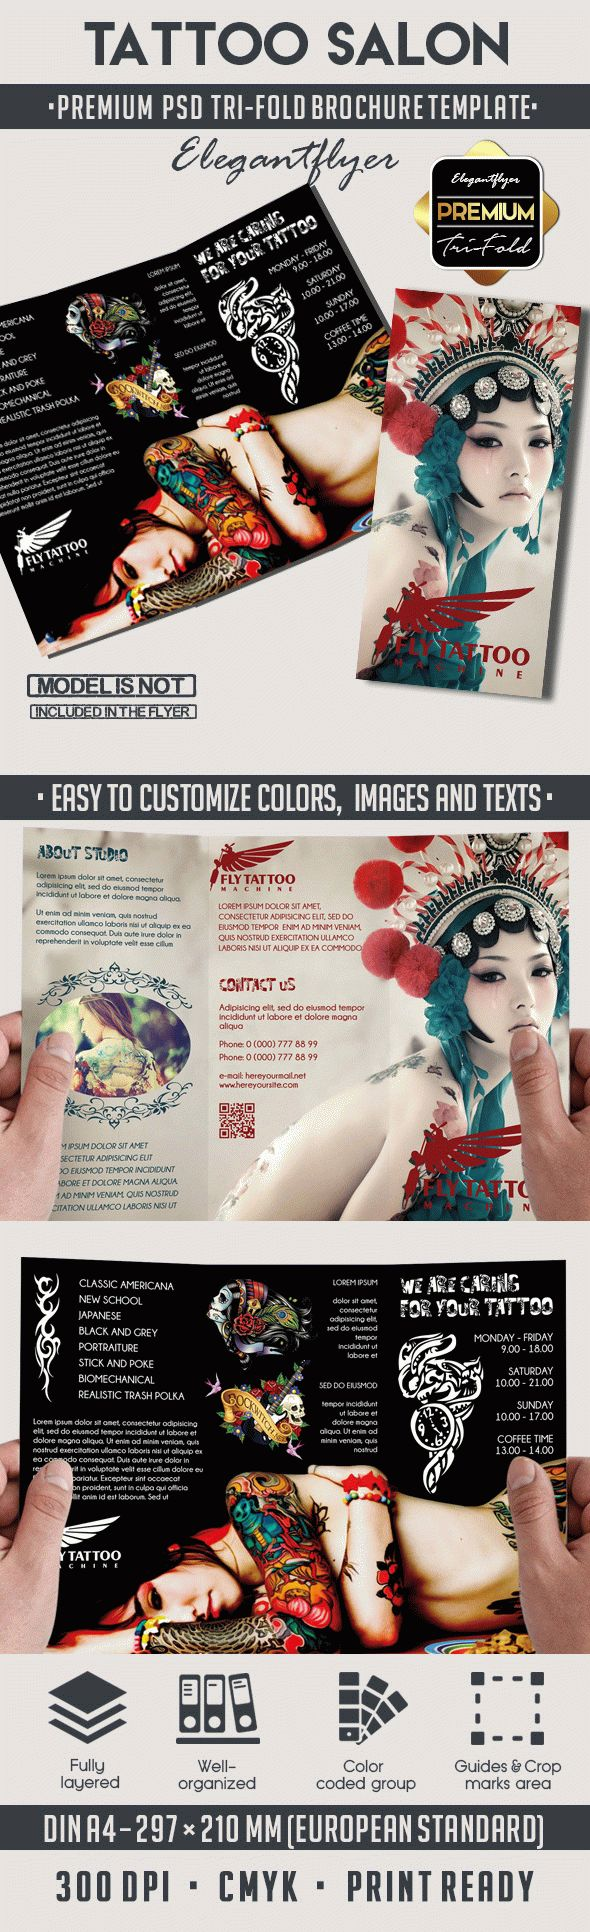 Tattoo Salon Premium Tri-Fold PSD Brochure Template